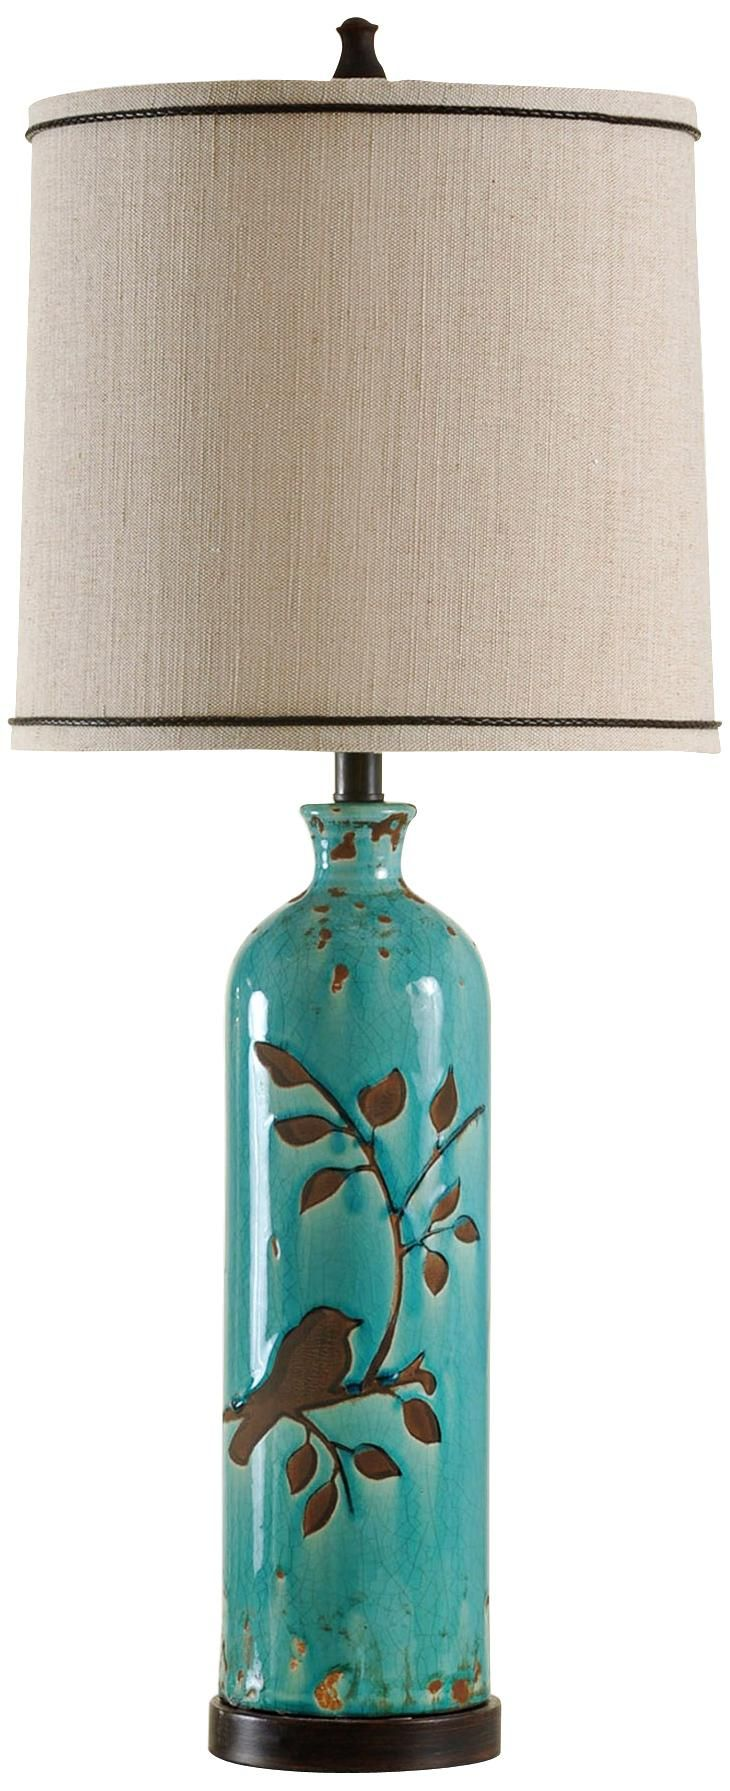 Best 25+ Turquoise lamp ideas only on Pinterest | Seahorse decor ...